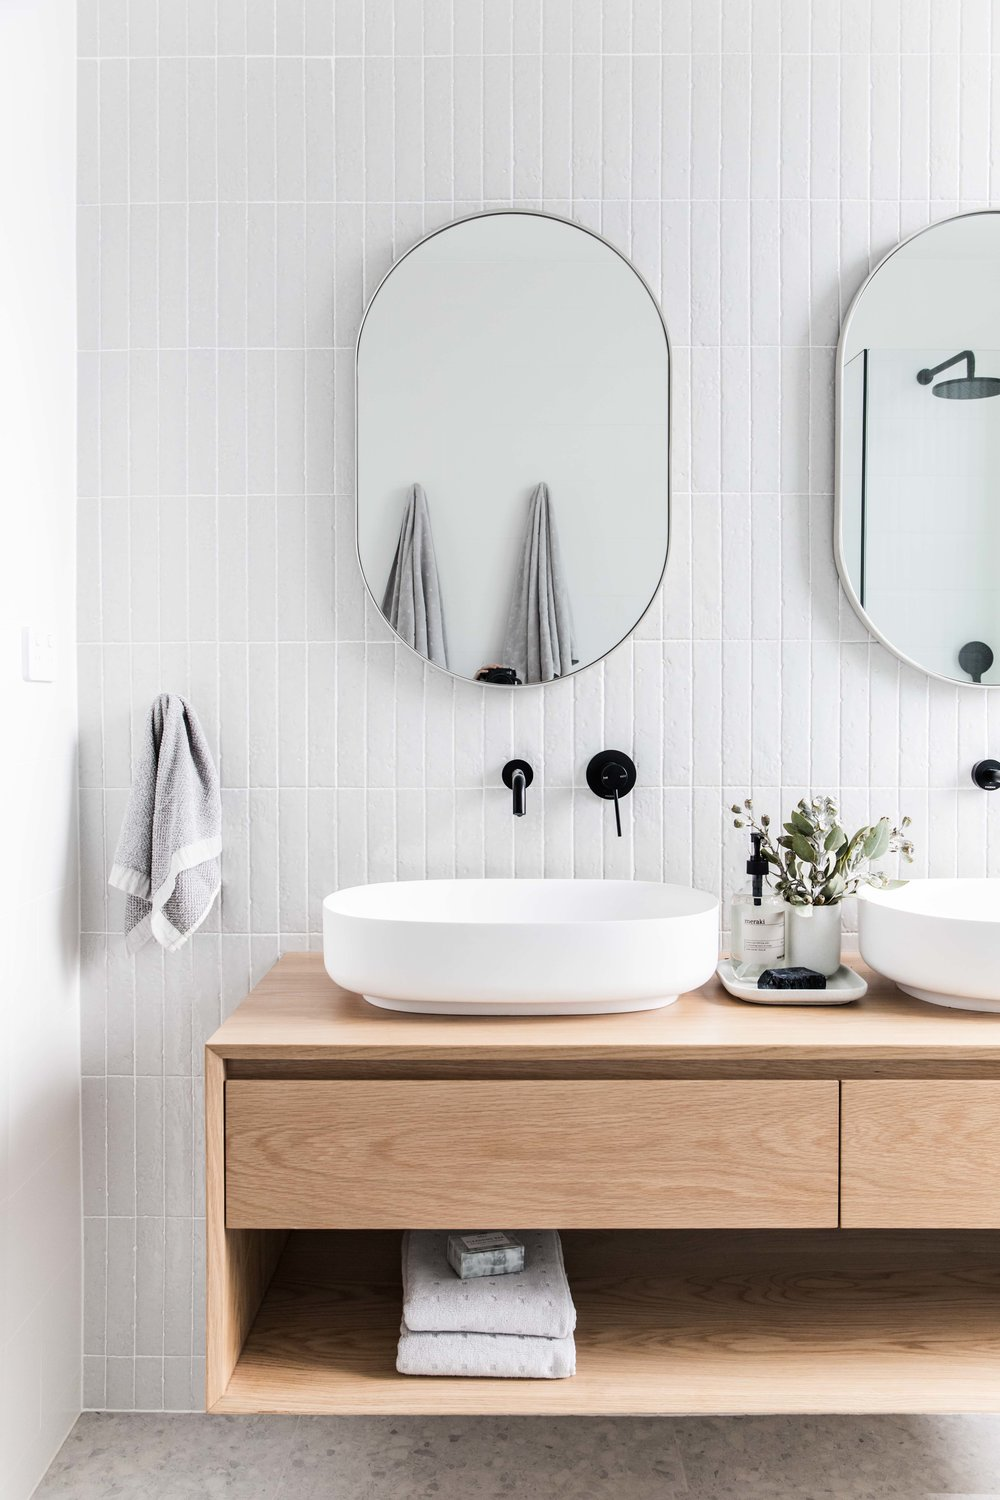 This bathroom was created by Catherine Heraghty of The Stables